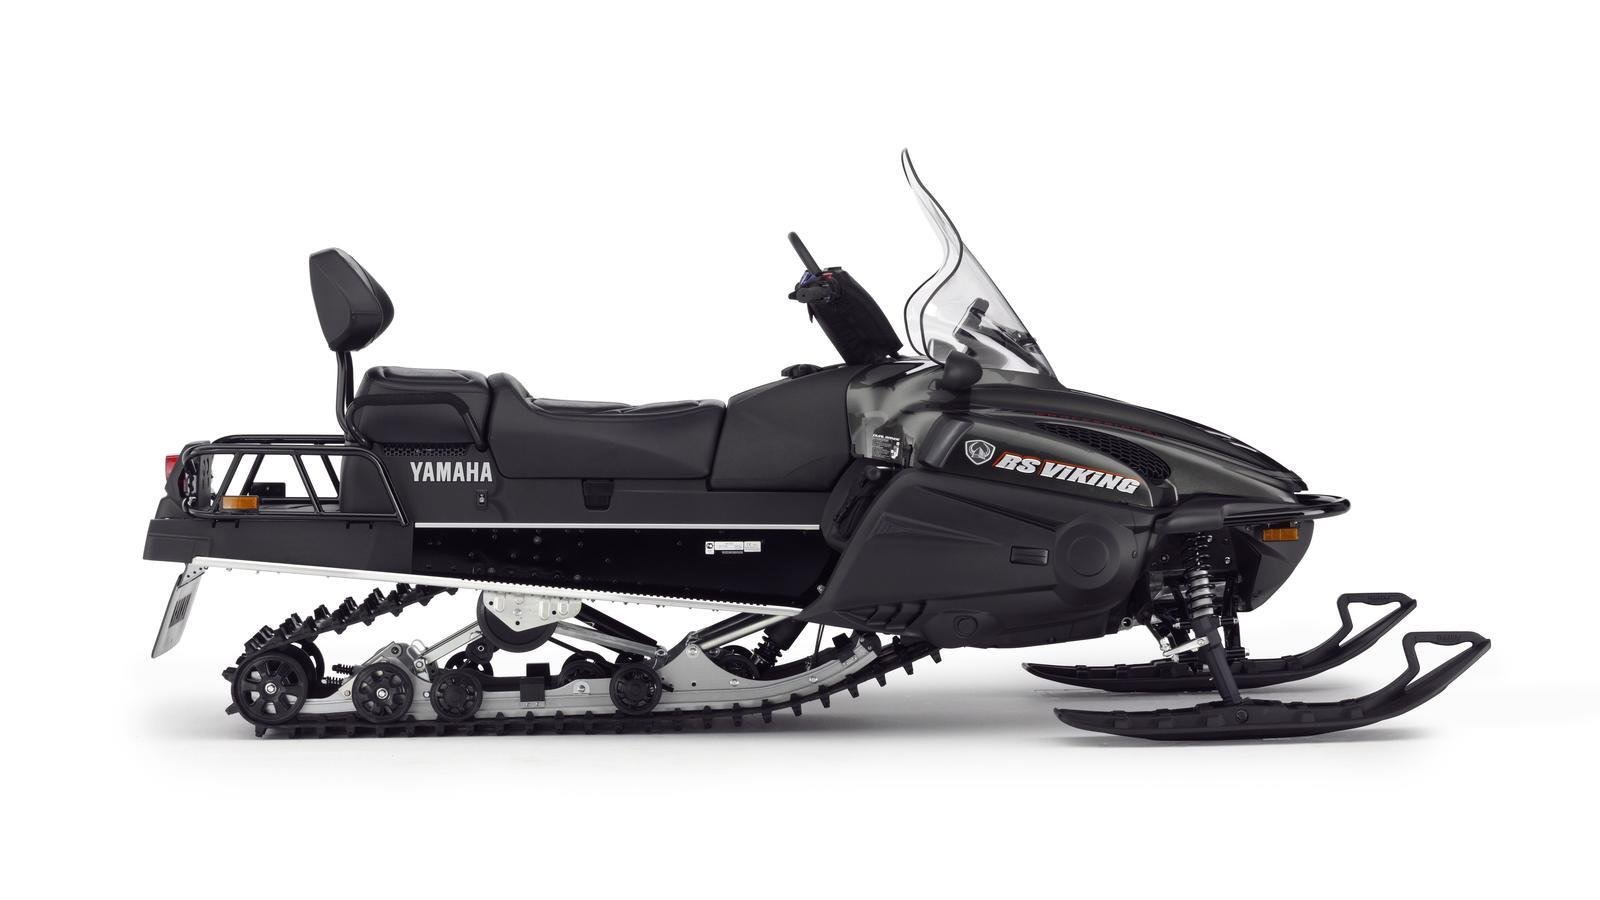 Yamaha Viking Snowmobile Top Speed